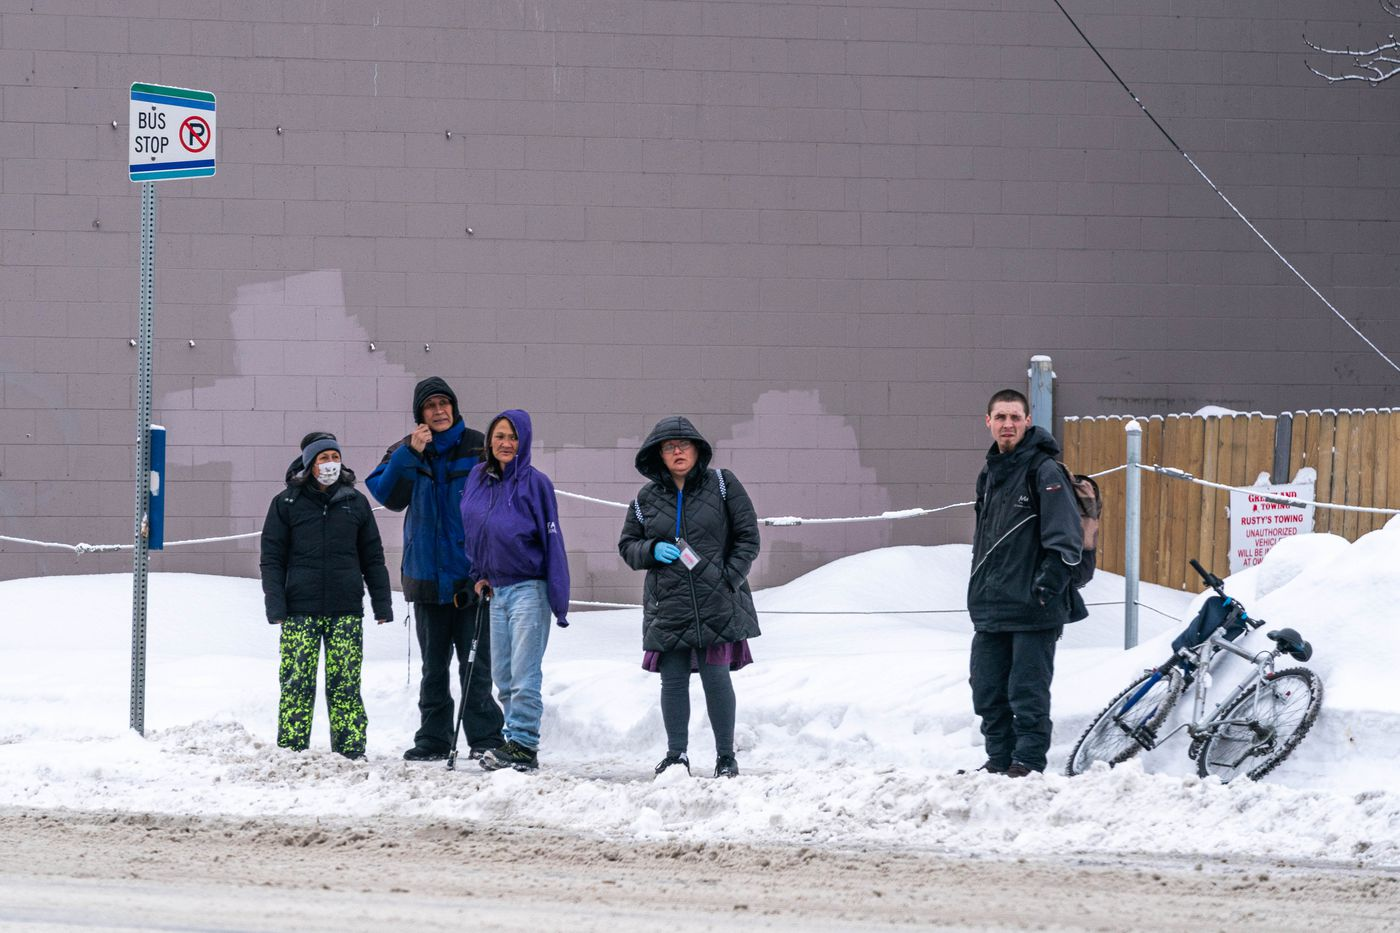 People wait for a public bus on 4th Avenue in downtown Anchorage on Wednesday, March 18, 2020. (Loren Holmes / ADN)